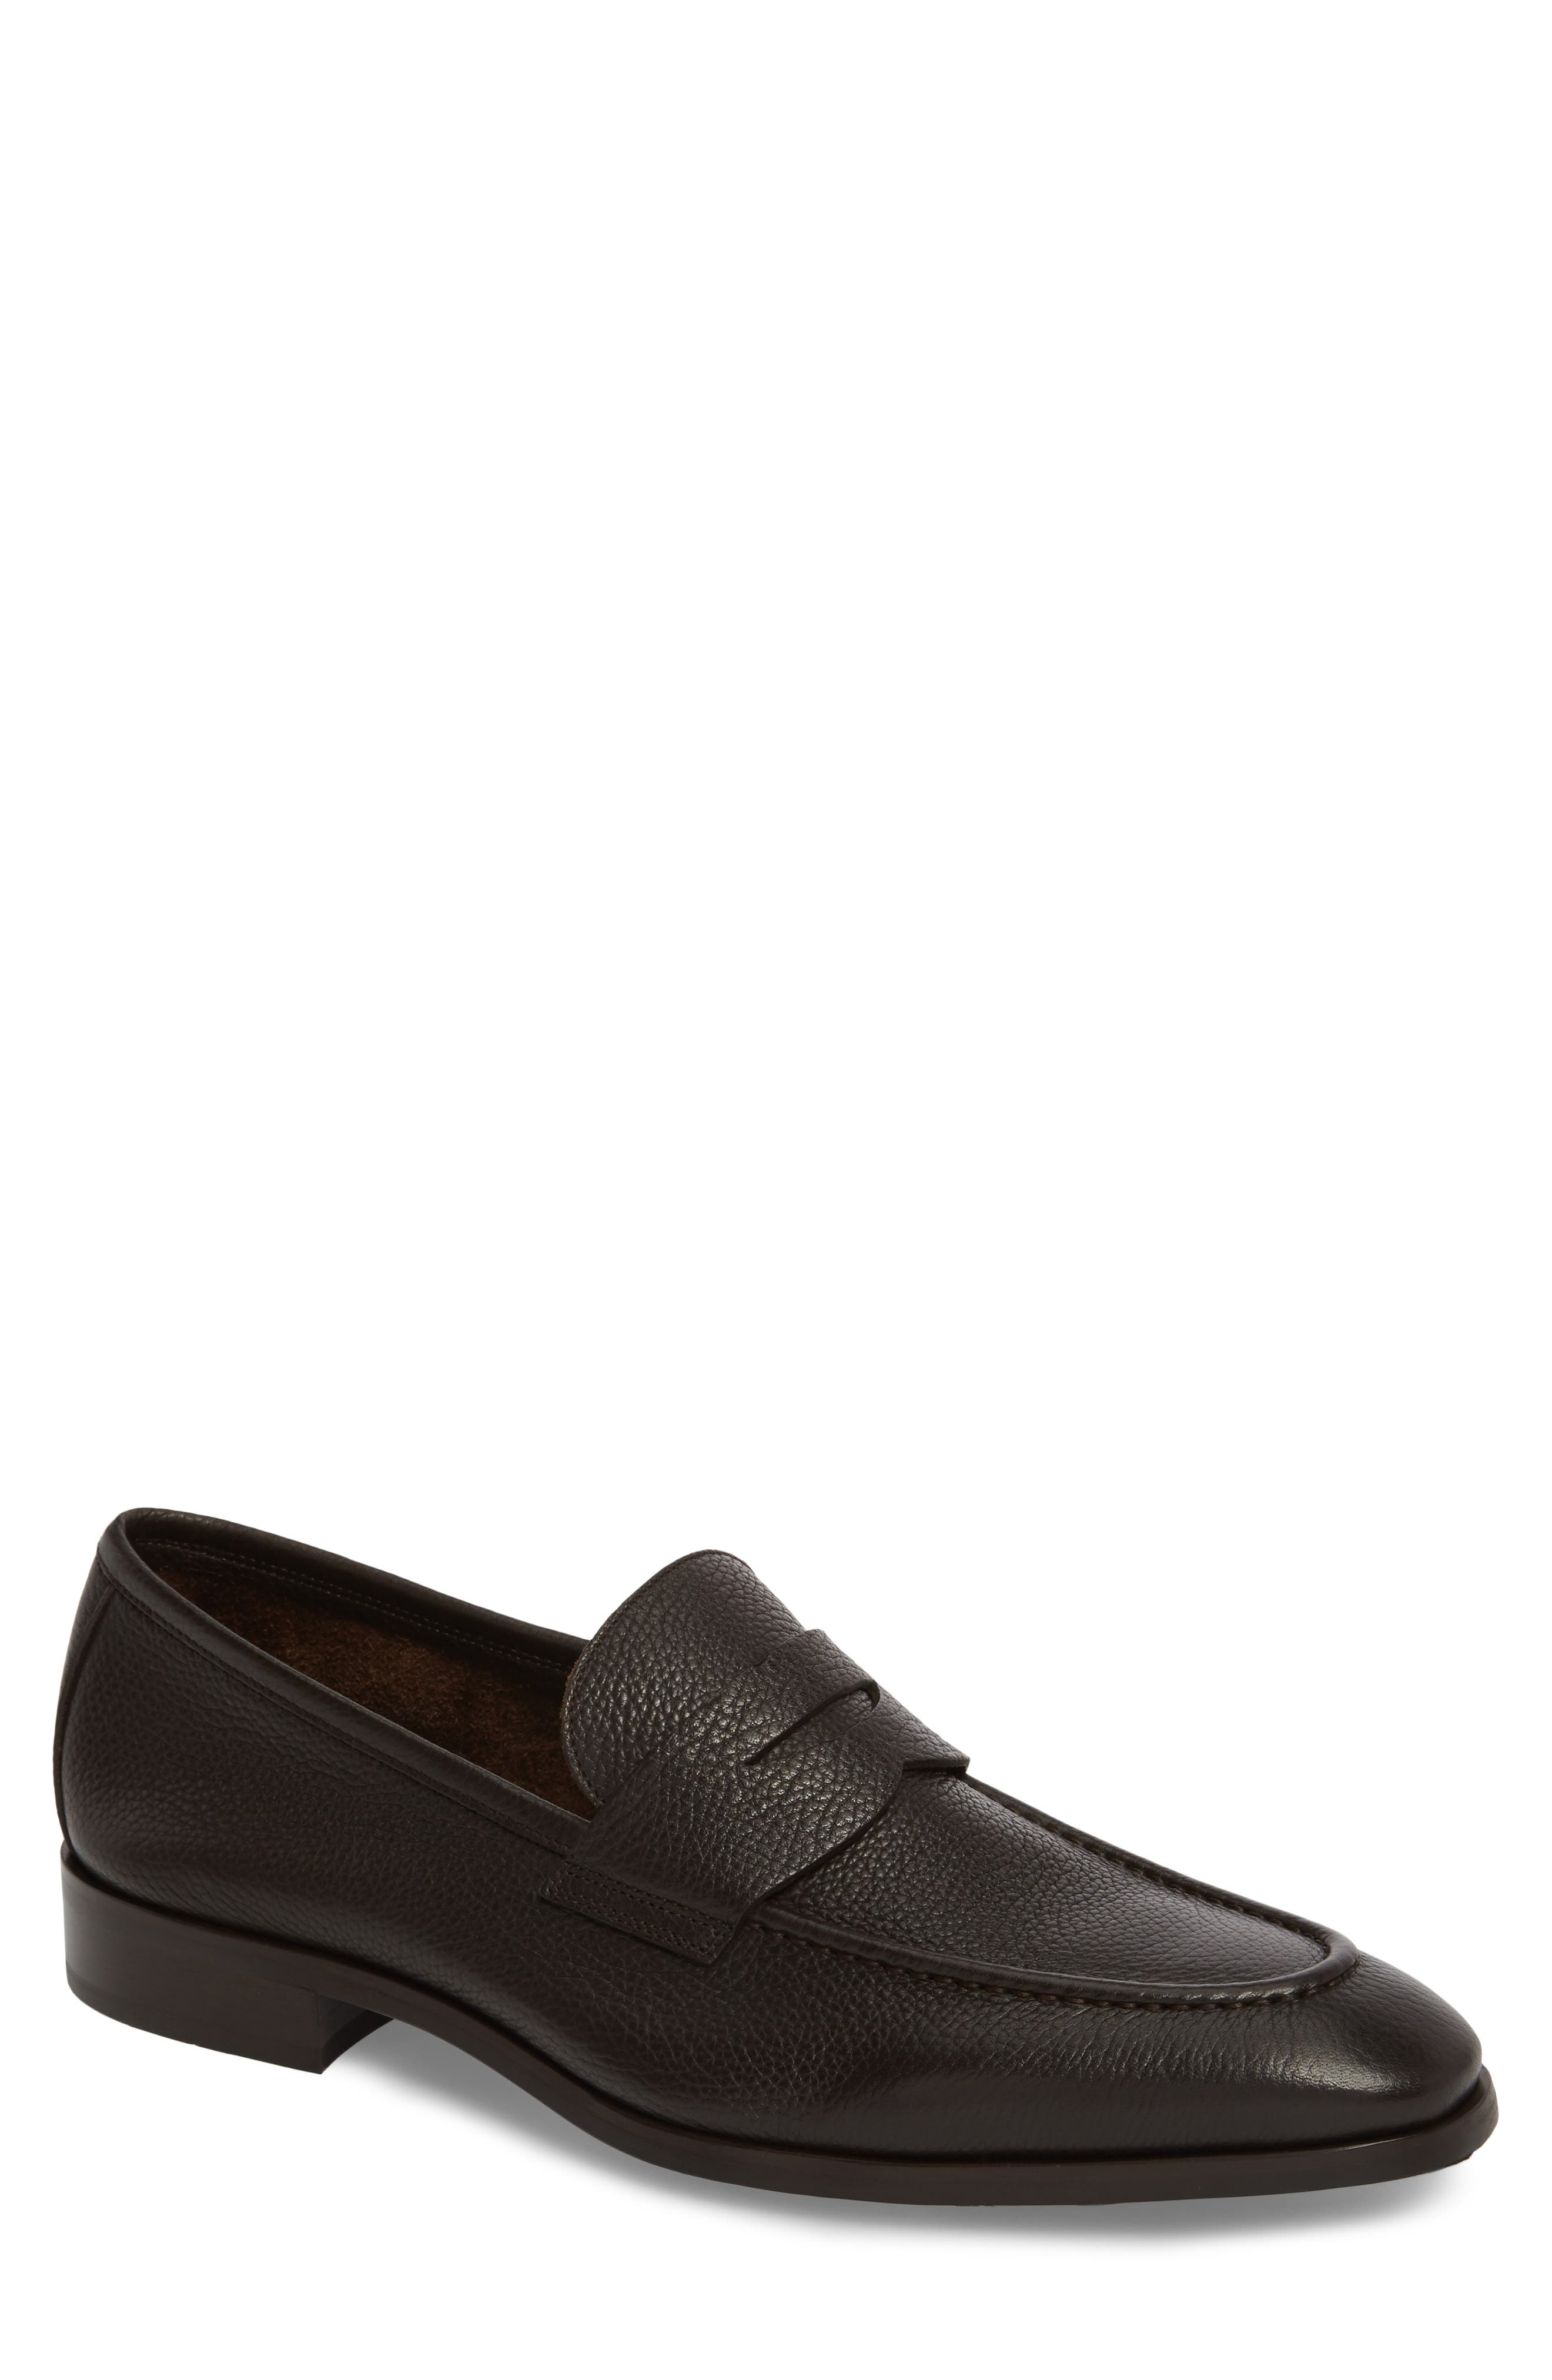 TO BOOT NEW YORK Men'S Johnson Leather Apron Toe Penny Loafers in Tmoro Leather